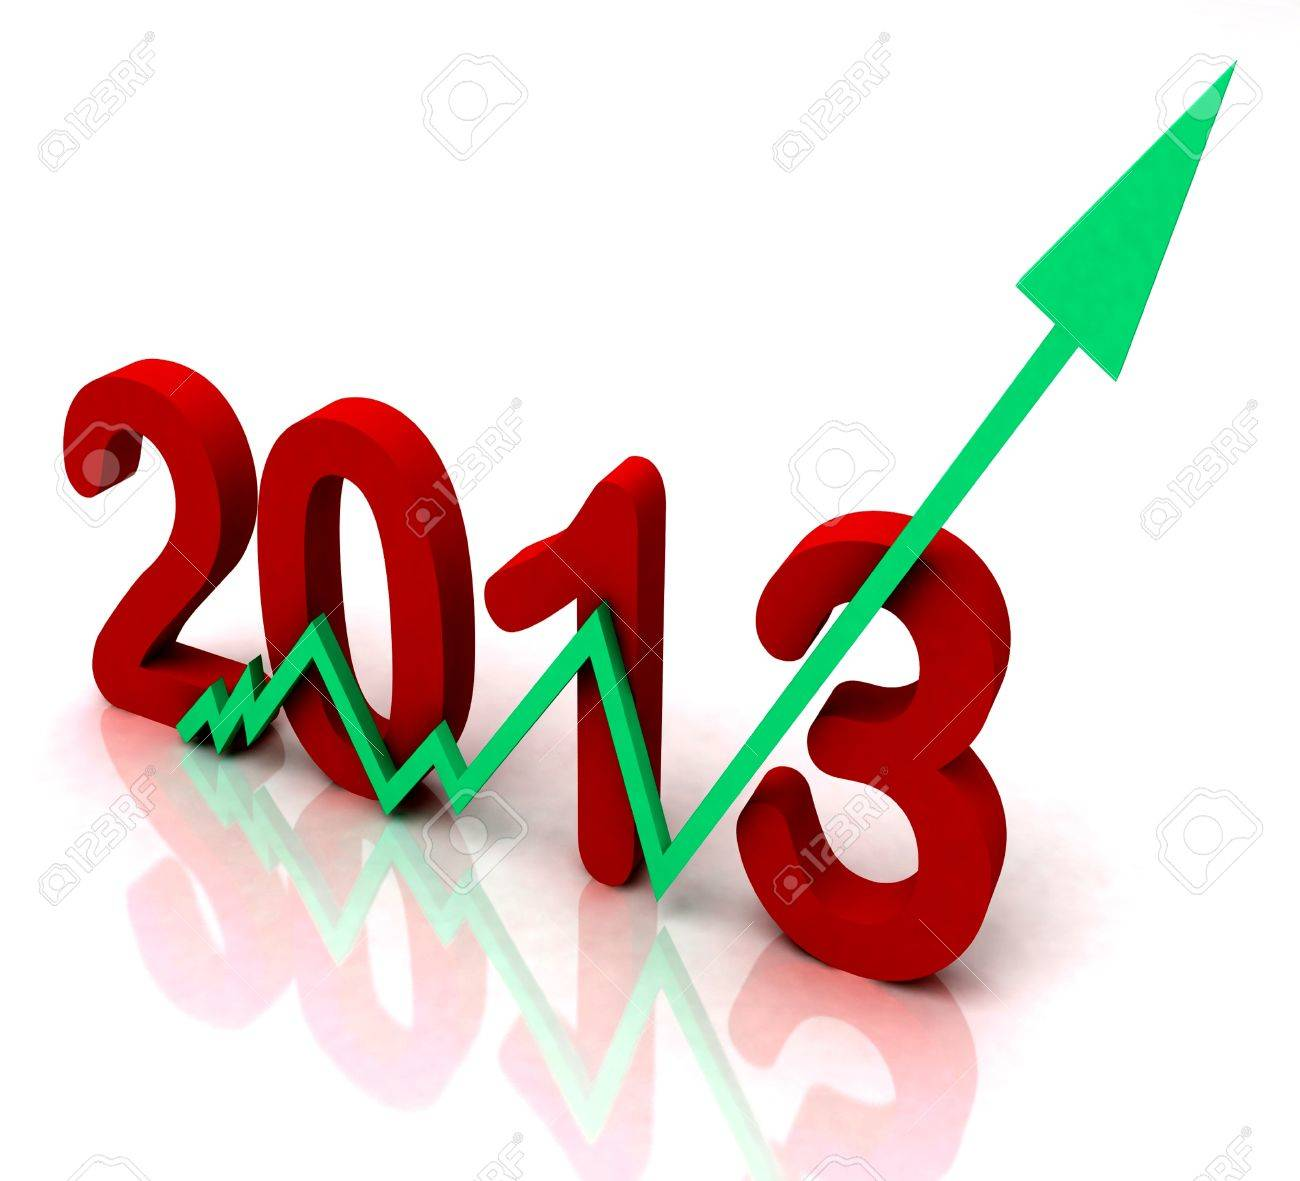 2013 Green Arrow Showing Sales Turnover For Year Stock Photo - 16517824